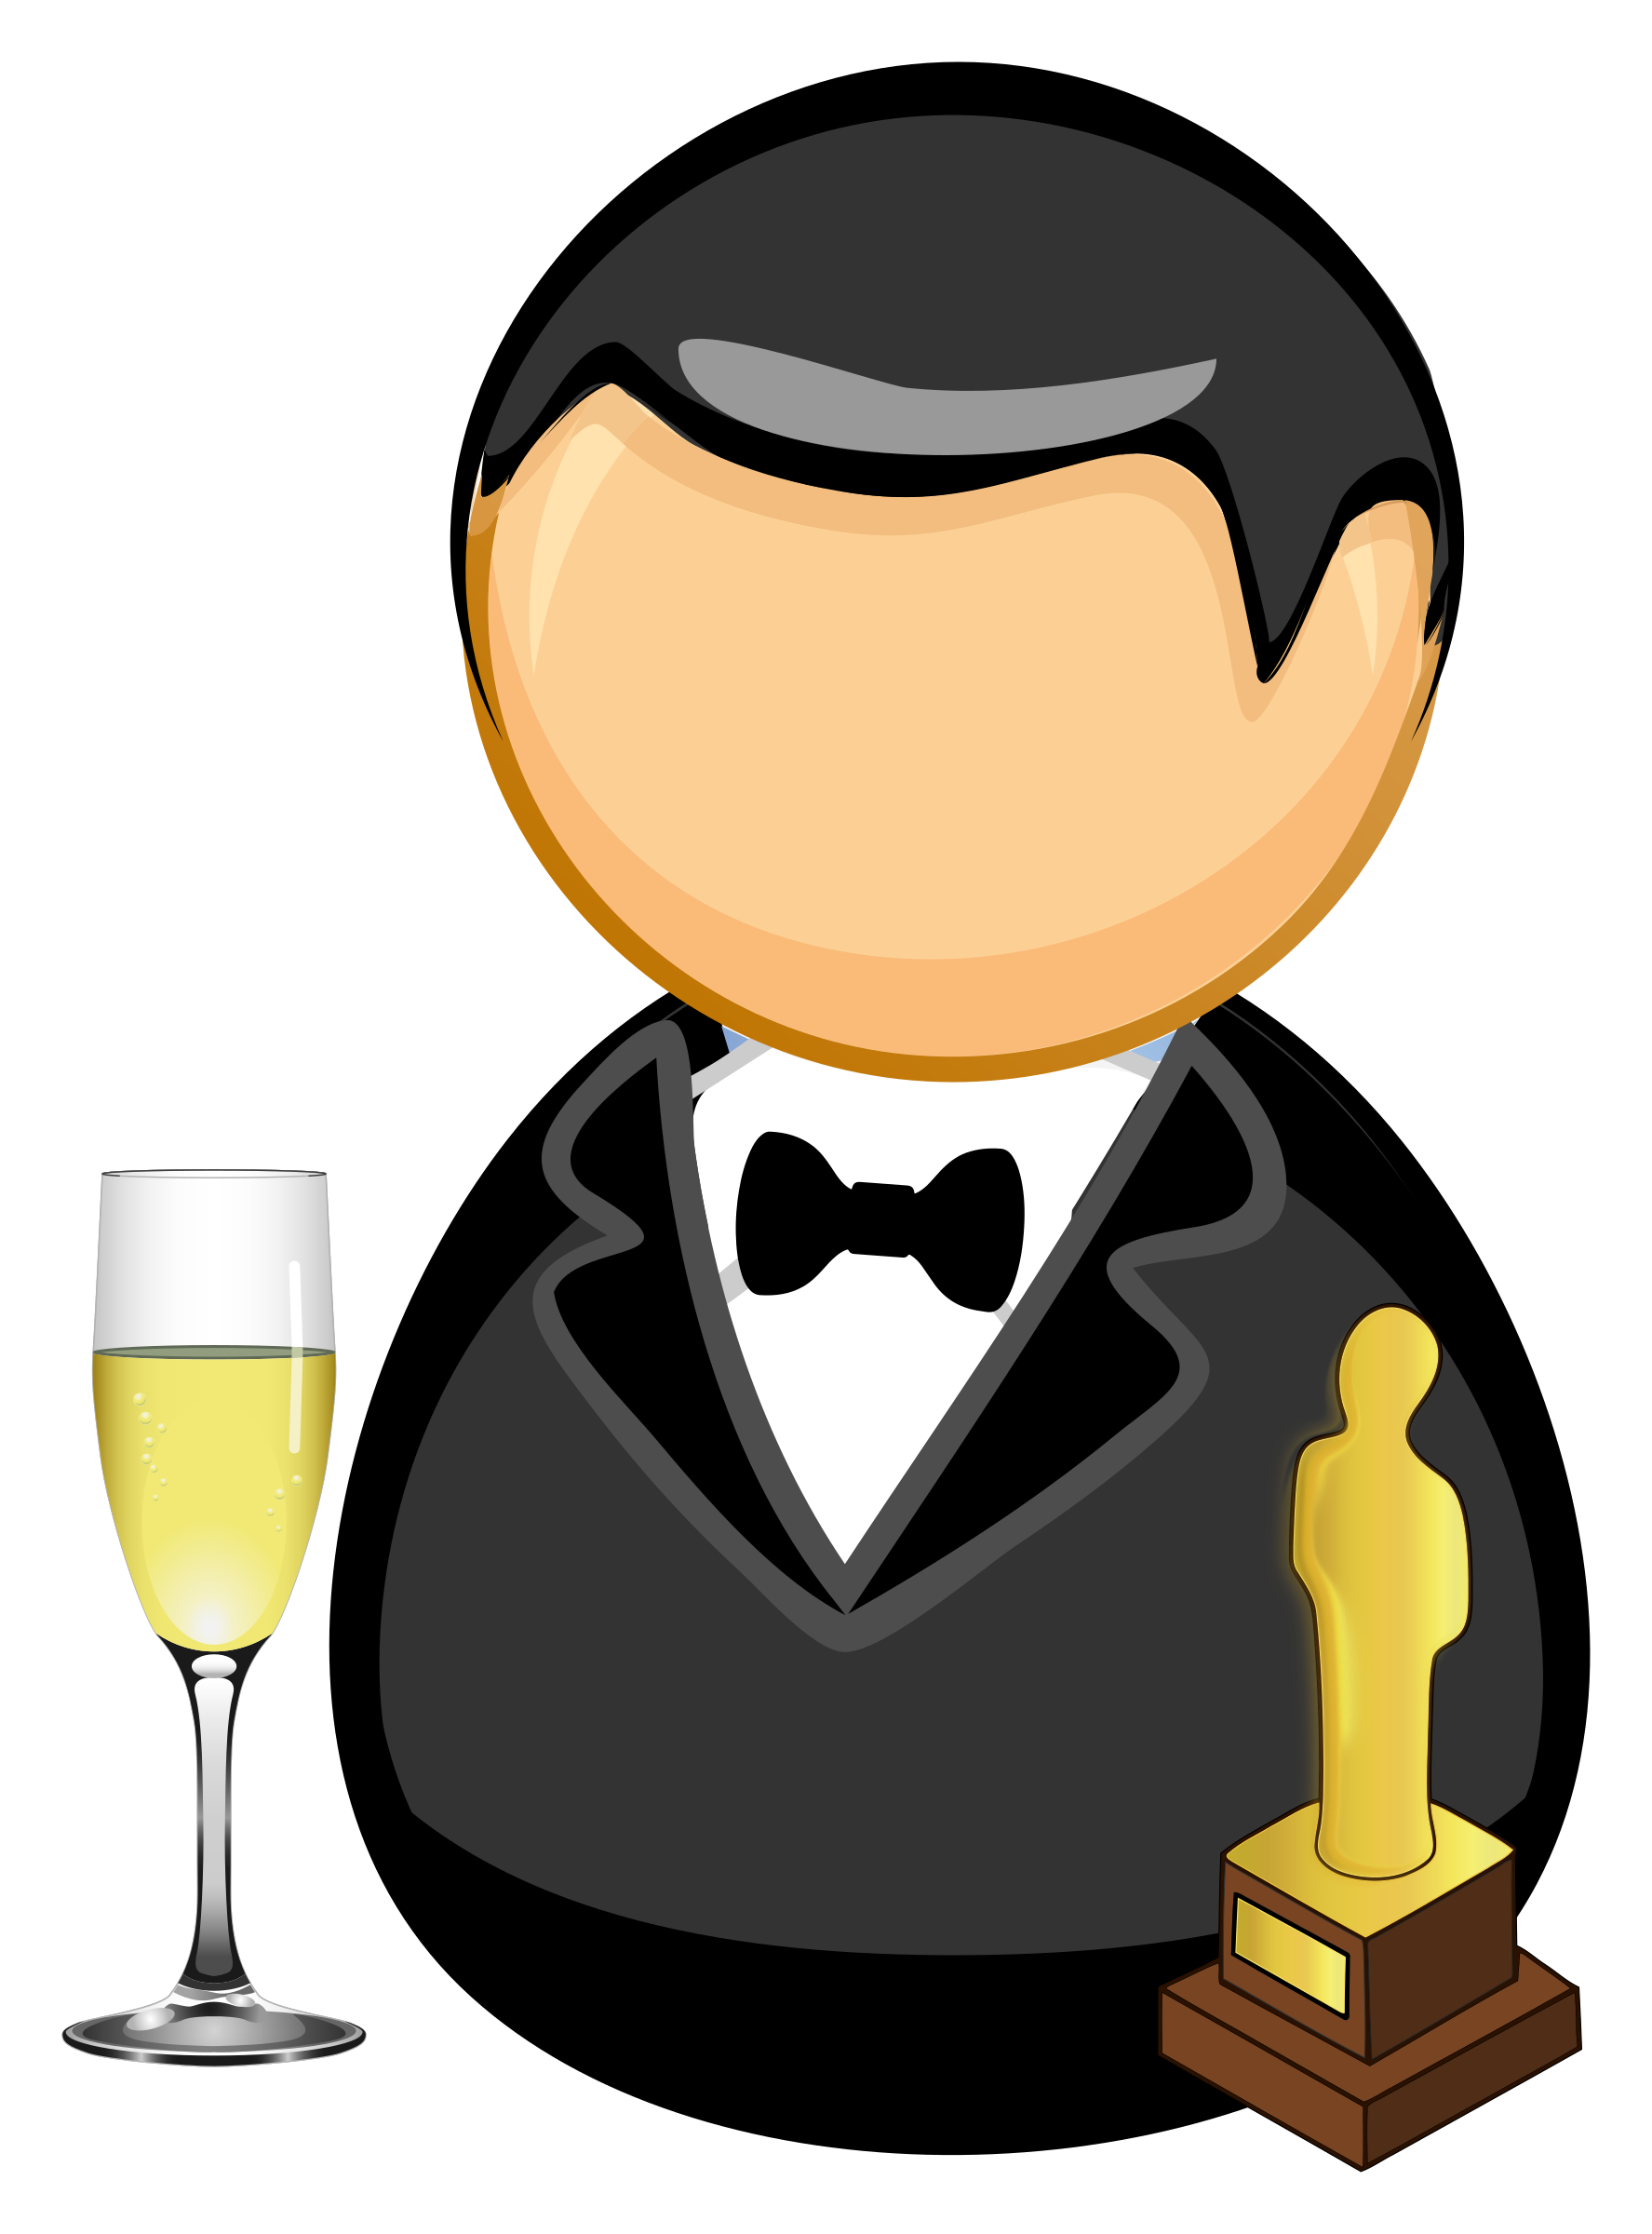 Movie clipart actor, Movie actor Transparent FREE for.